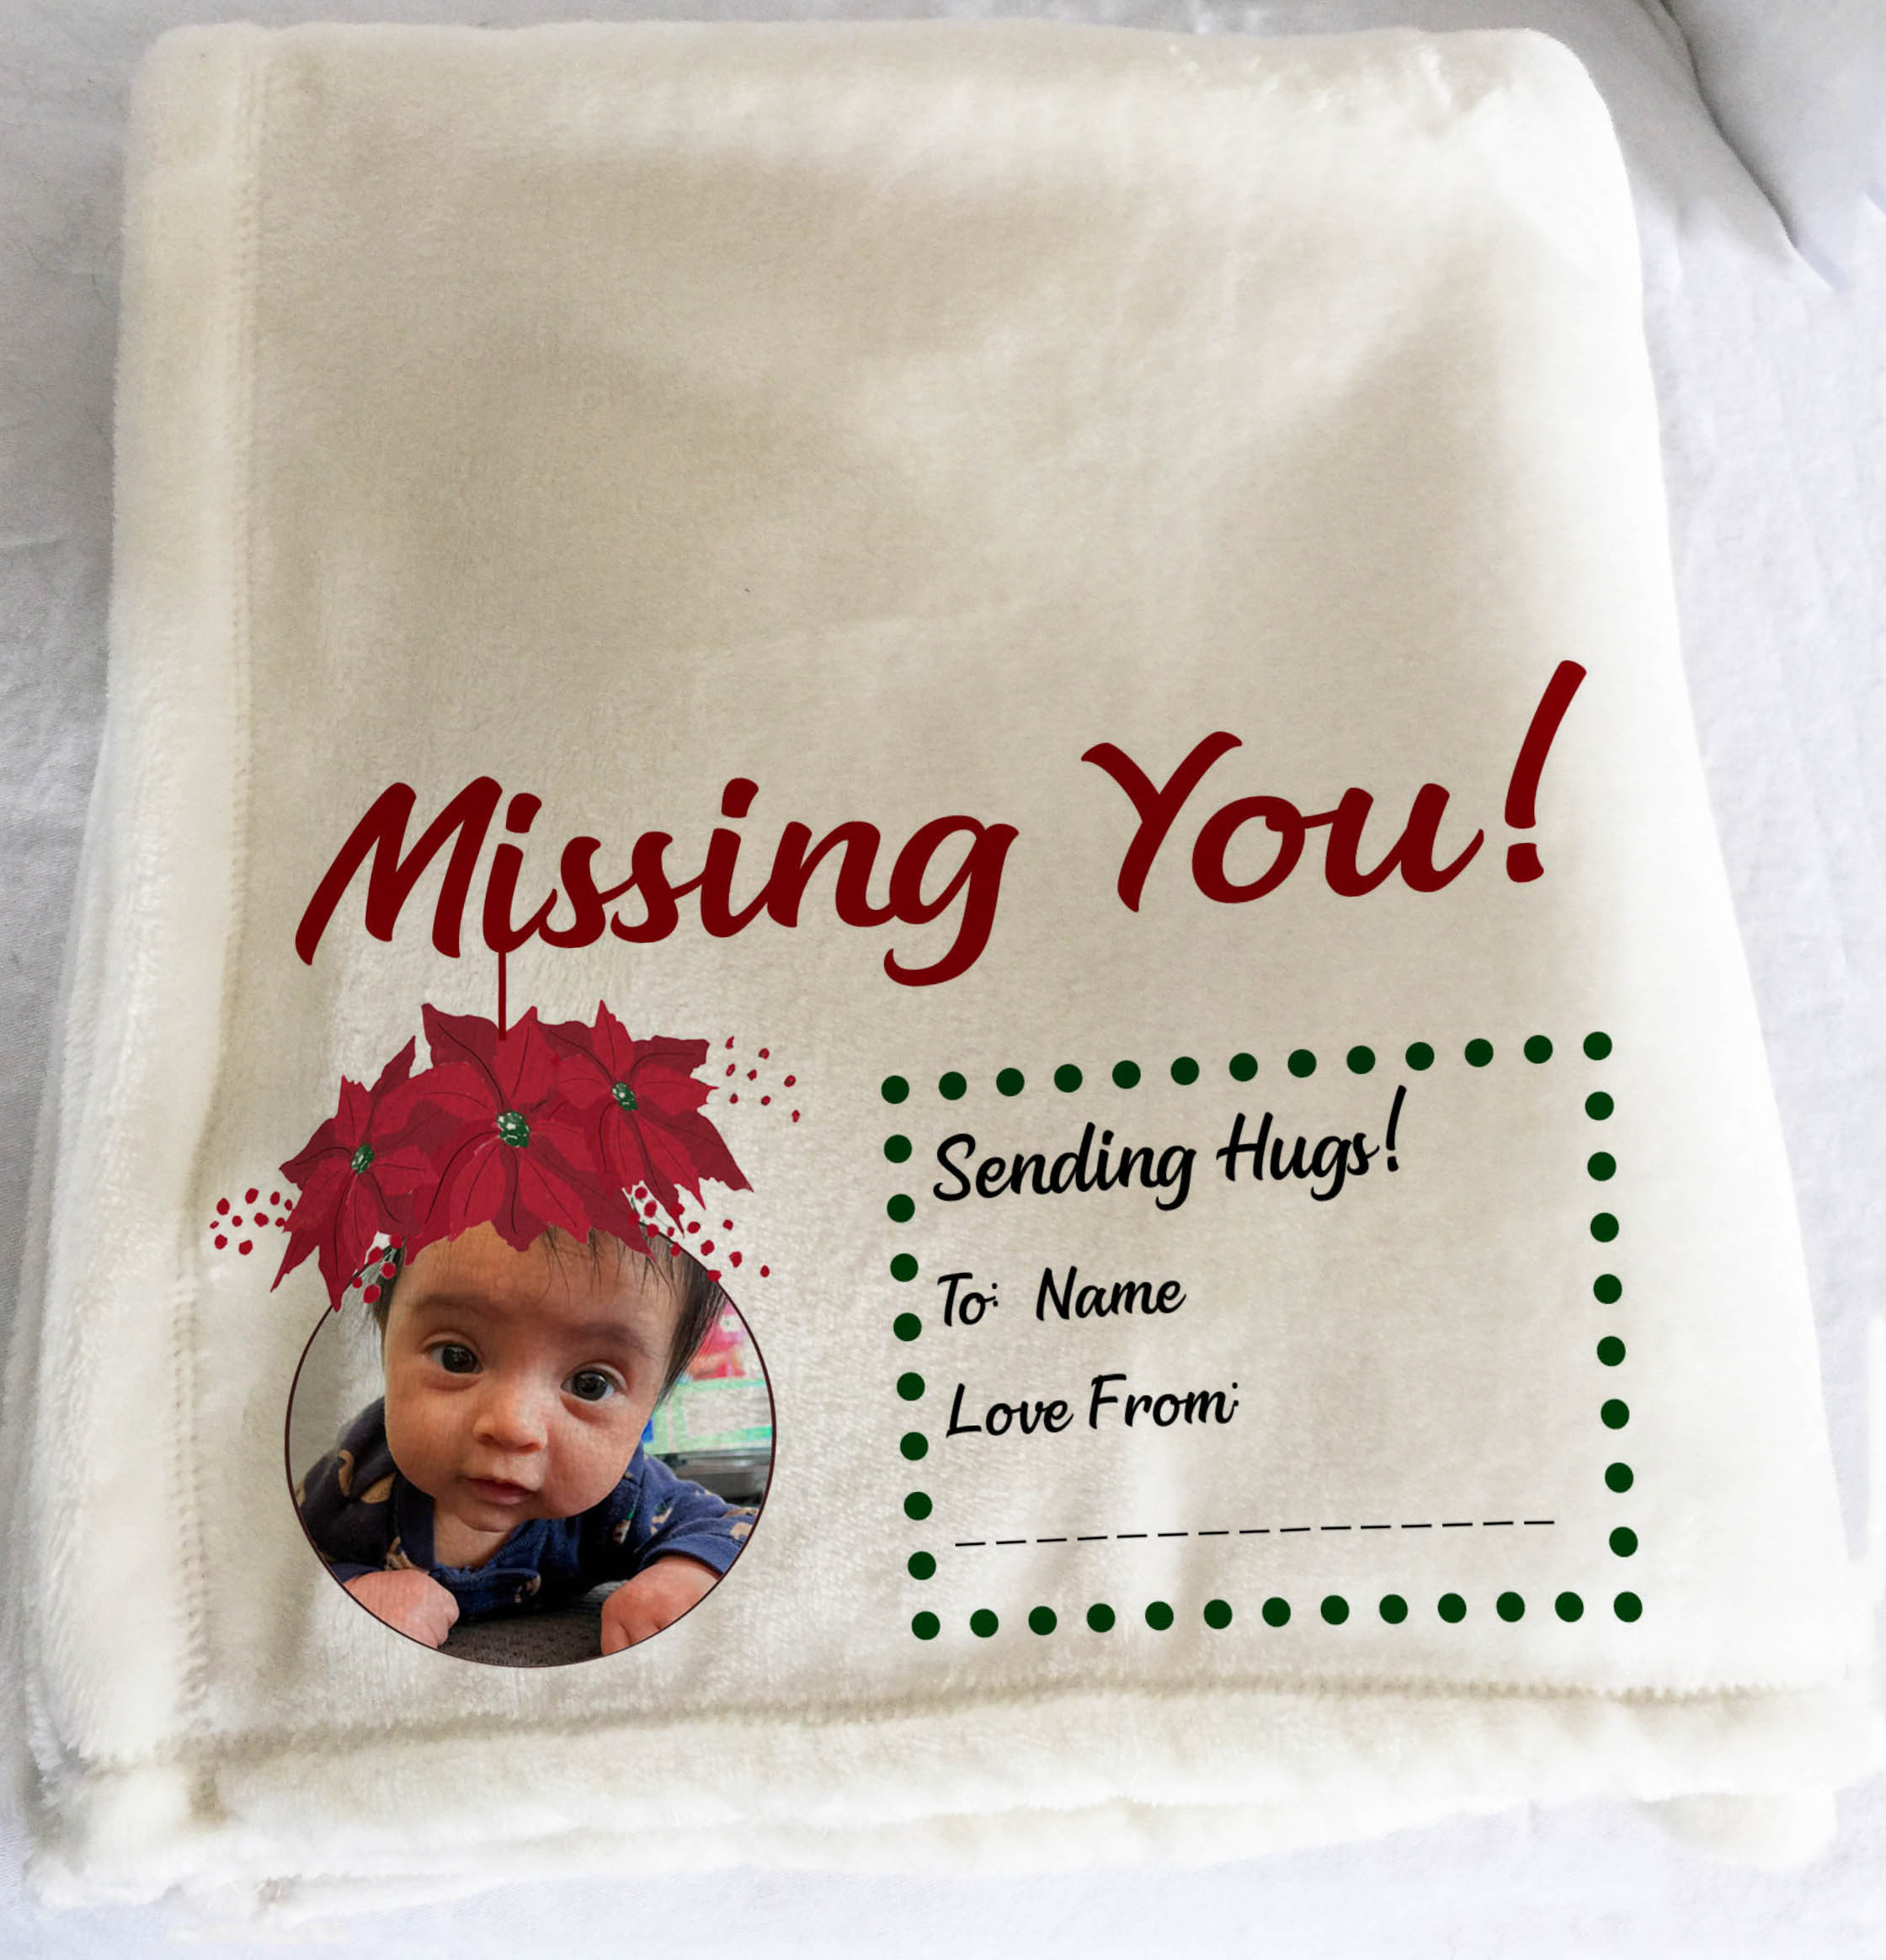 Personalized Throw Blanket, Personalized Christmas Gift, Blanket With Photo, Missing You, Sending Hugs, Christmas Gift For Her, Christmas Gift For Him